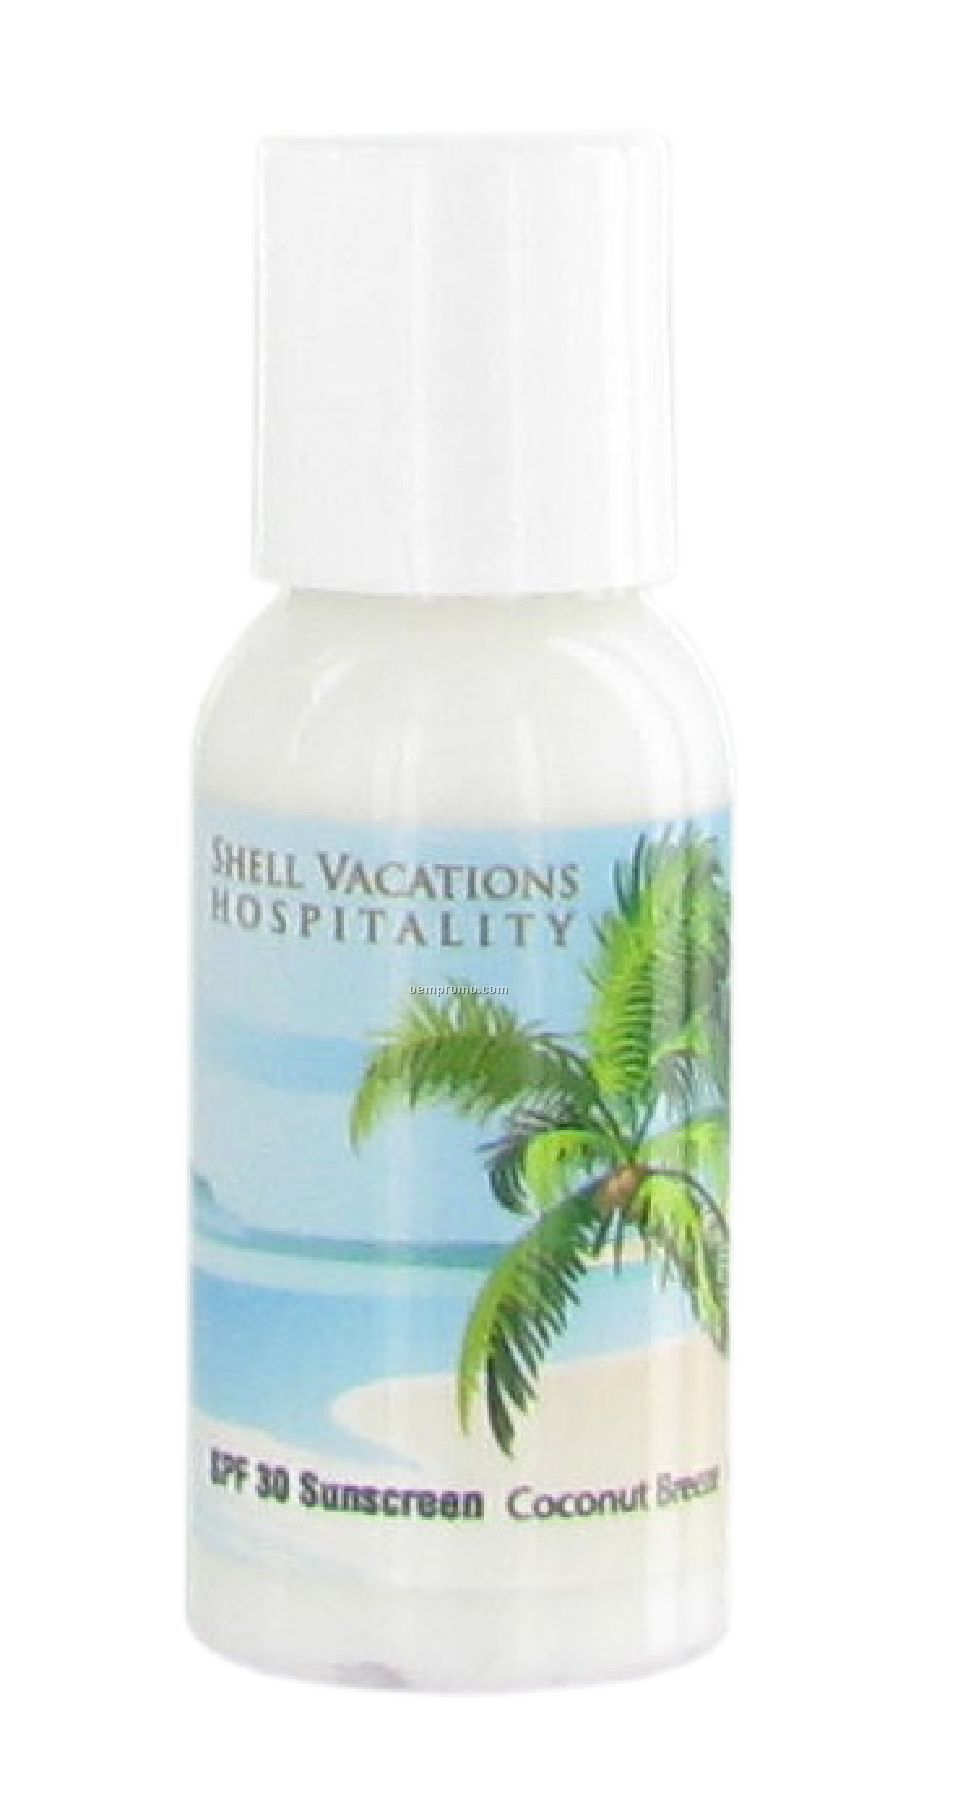 1 Oz. Spf 30 Sunscreen Lotion In Round Bottle - Next Day Service